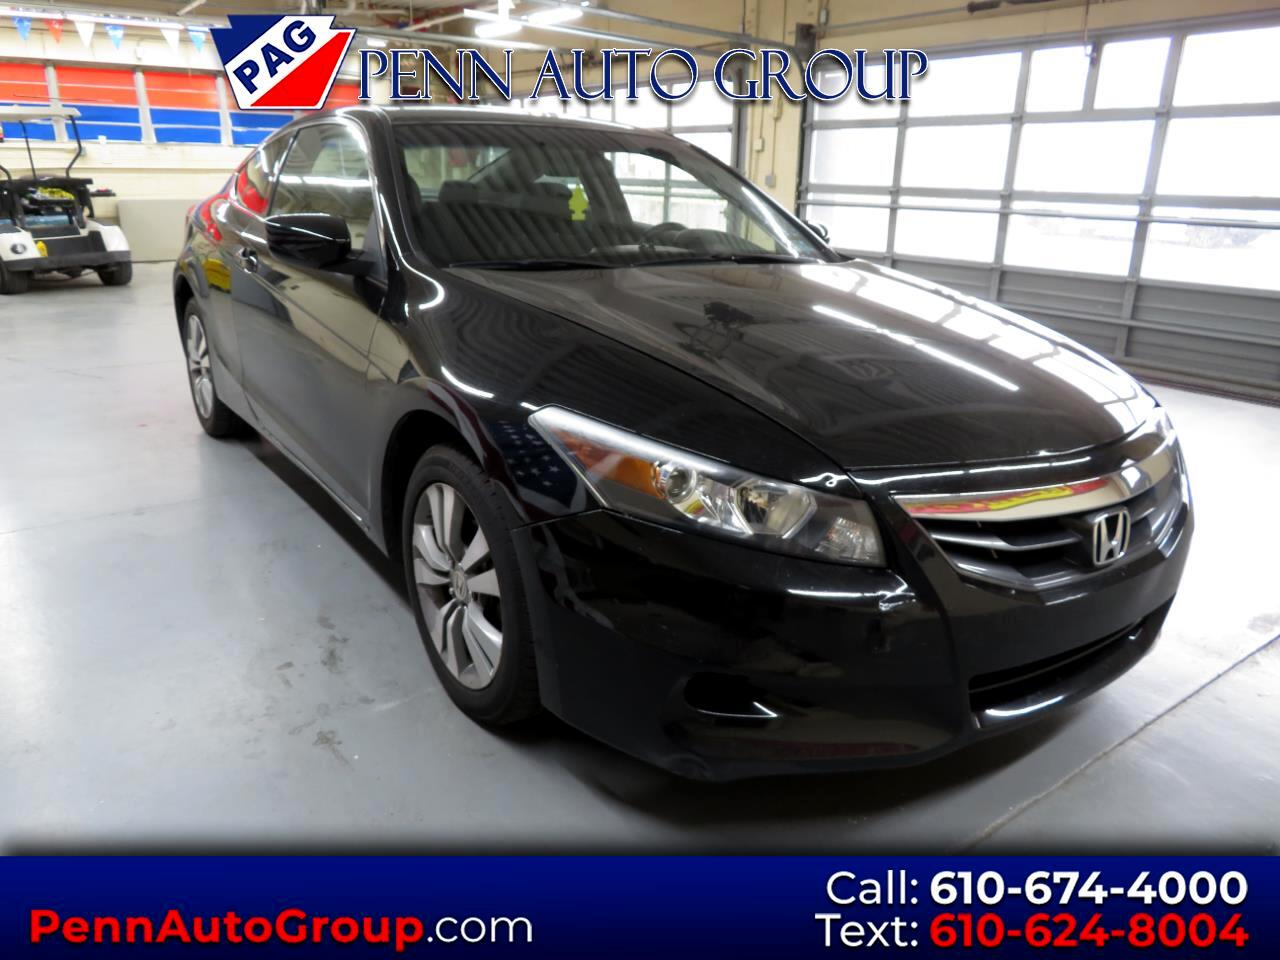 2011 Honda Accord LX-S Coupe